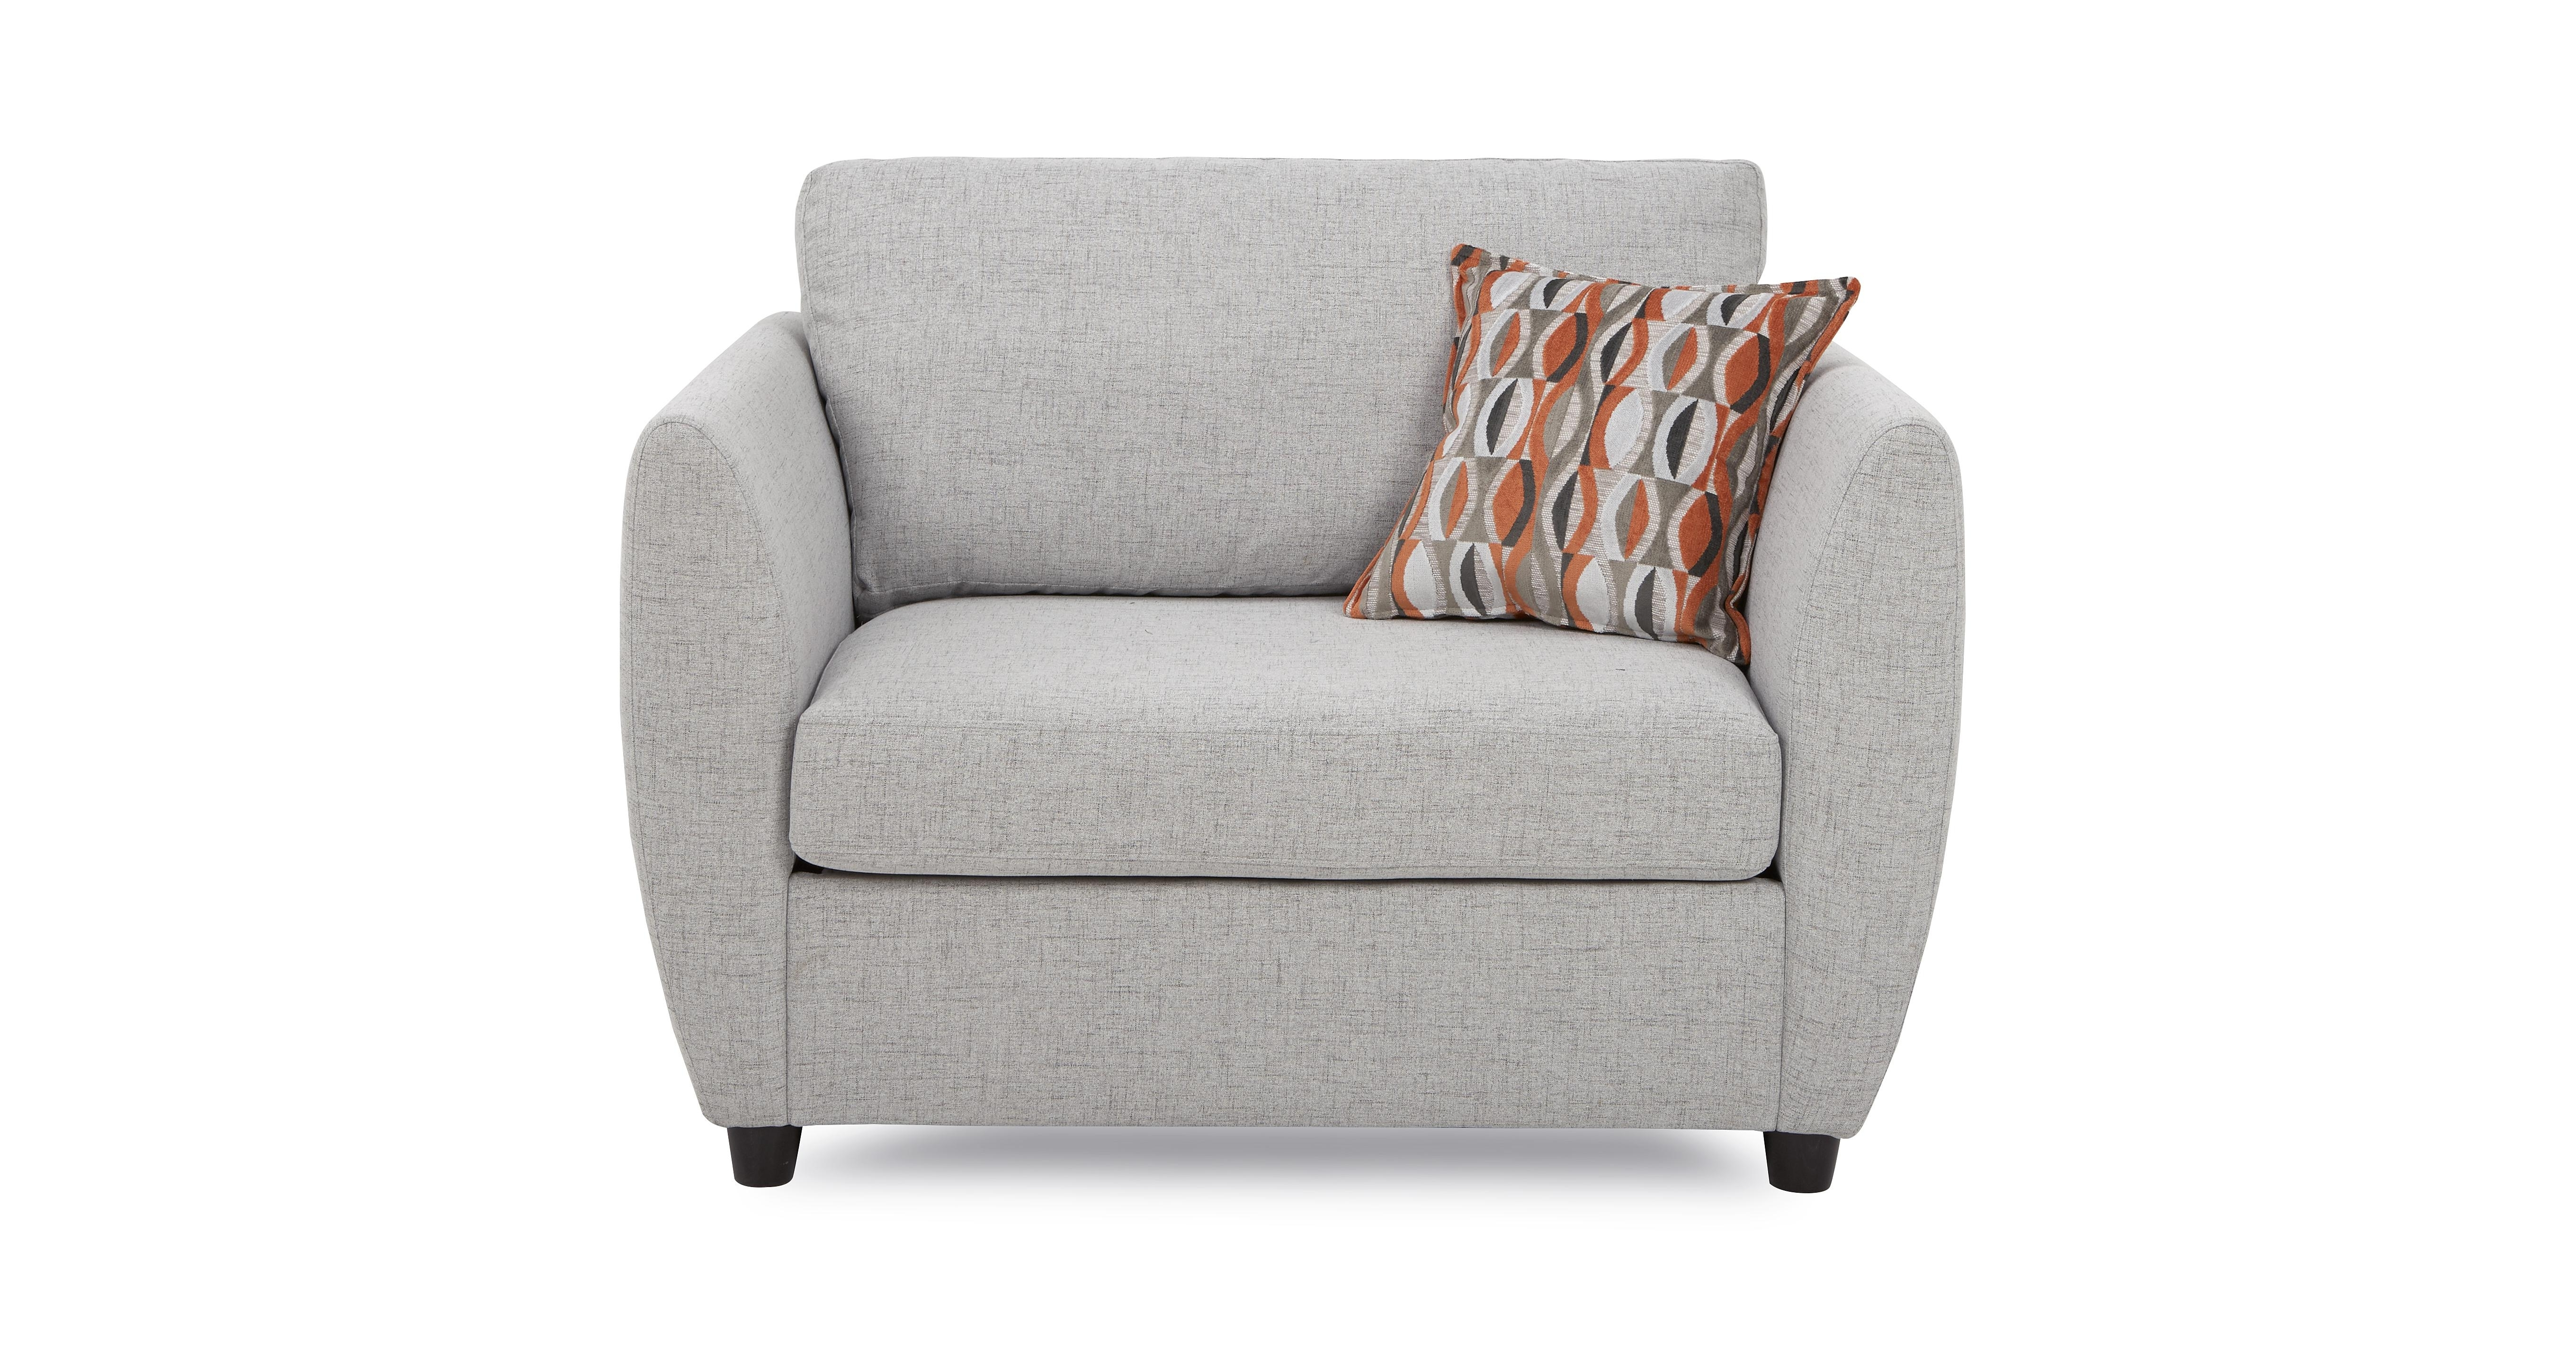 Well Known Sofa : Sofa And Chair Dimensions Sofa Chair Kijiji Edmonton Sofa For Bedroom Sofas And Chairs (View 7 of 20)